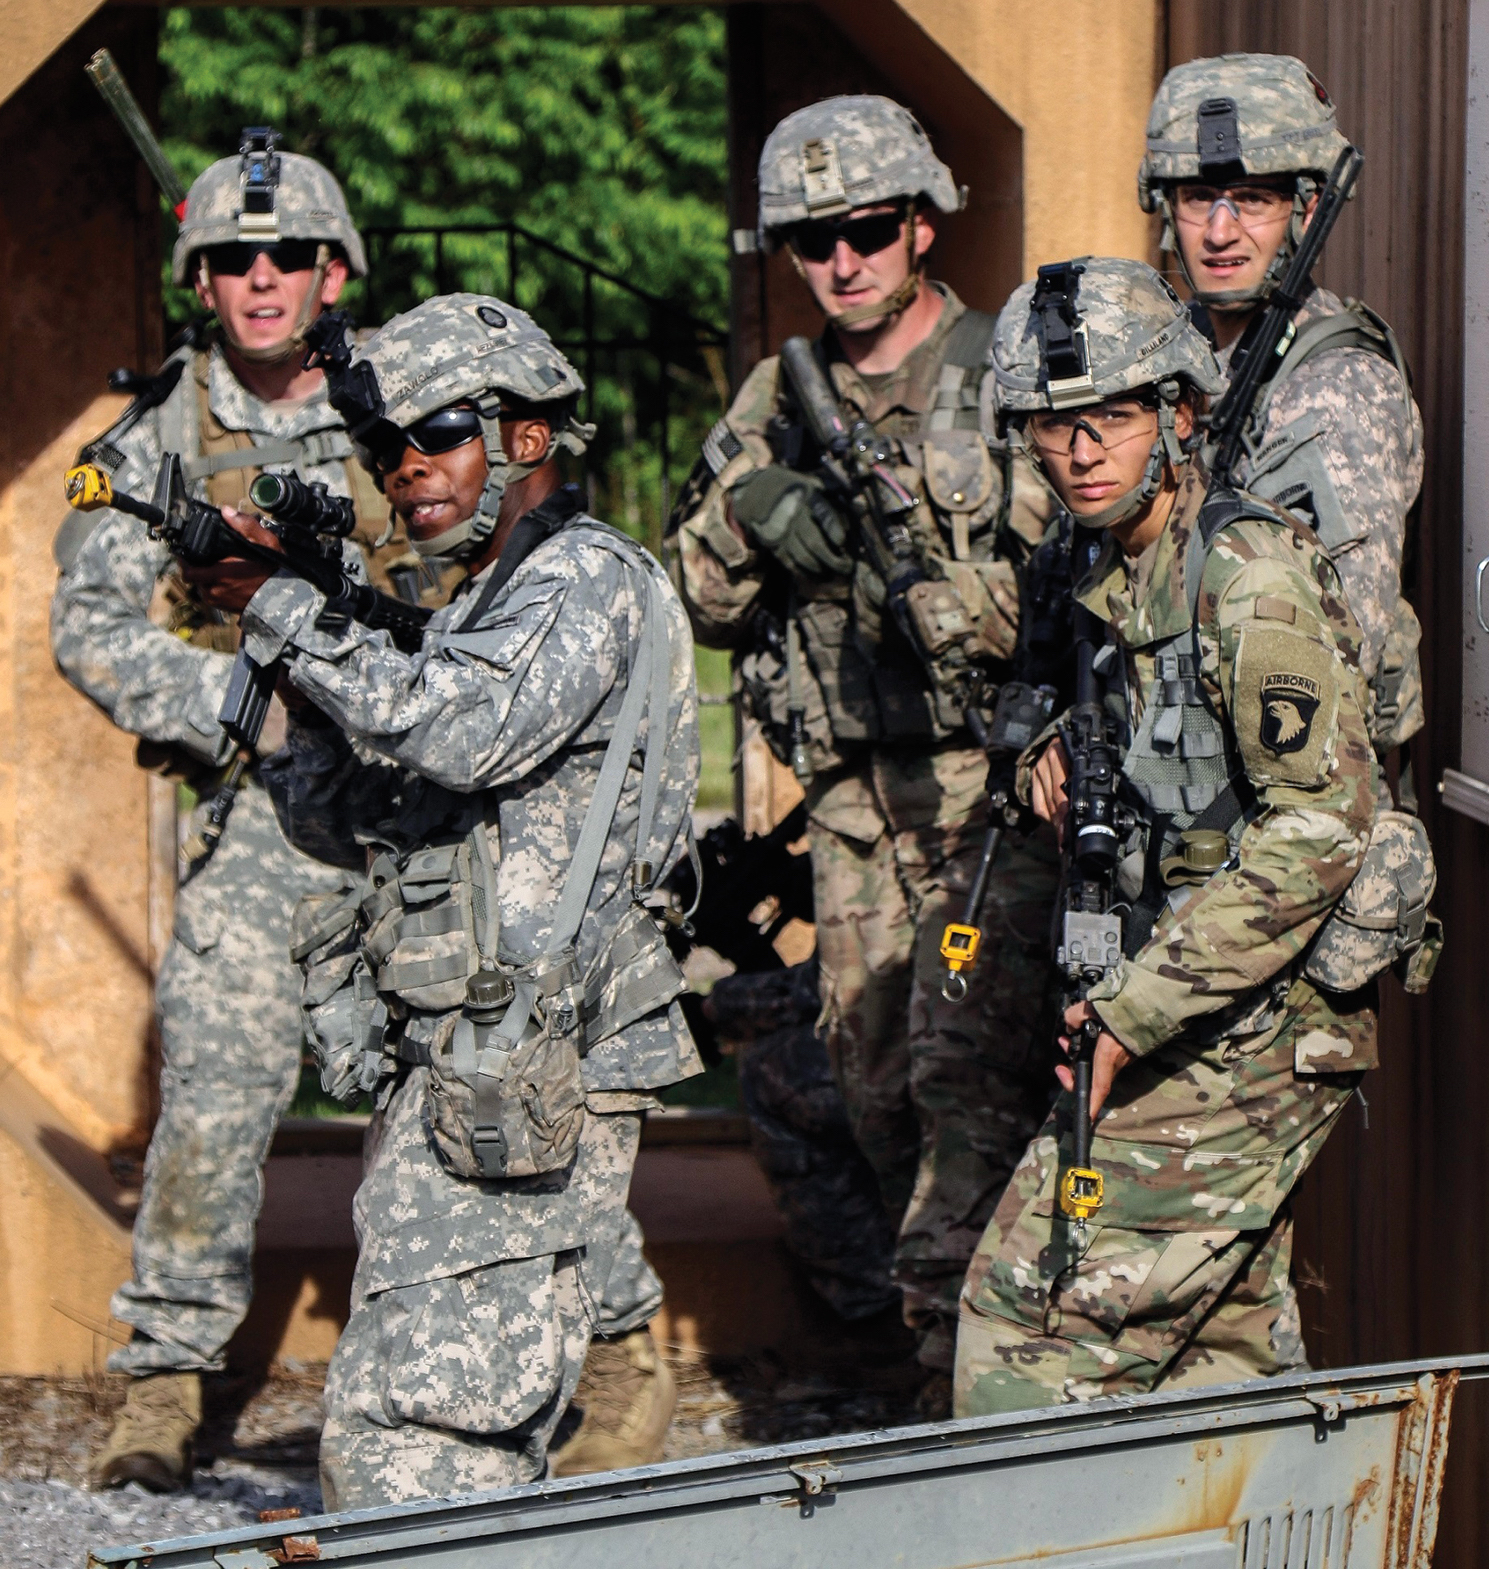 Sergeant Major of the Army: Cohesive Teams Will Thrive in Ambiguity